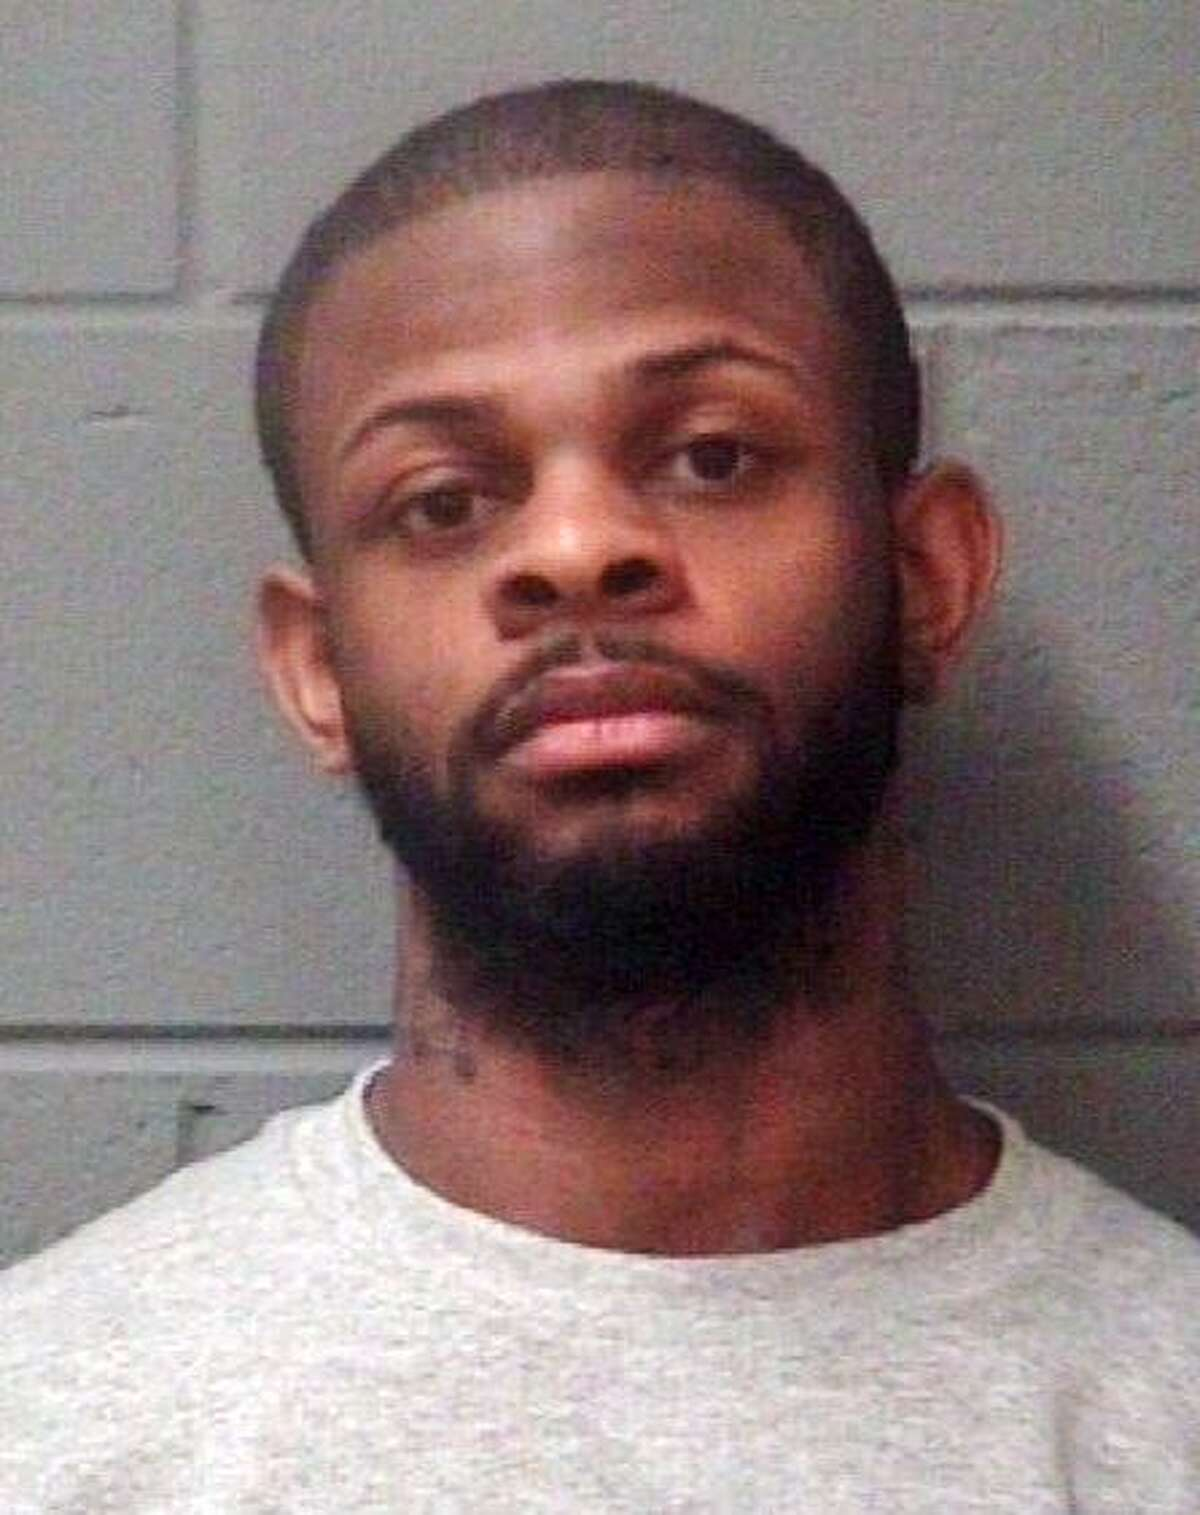 Traquan Romel Curtis, 21, a North Carolina man suspected in the September murder of his 9-month-old daughter in Jacksonville was arrested in Waterbury, Conn. on Friday, Dec. 15, 2017.